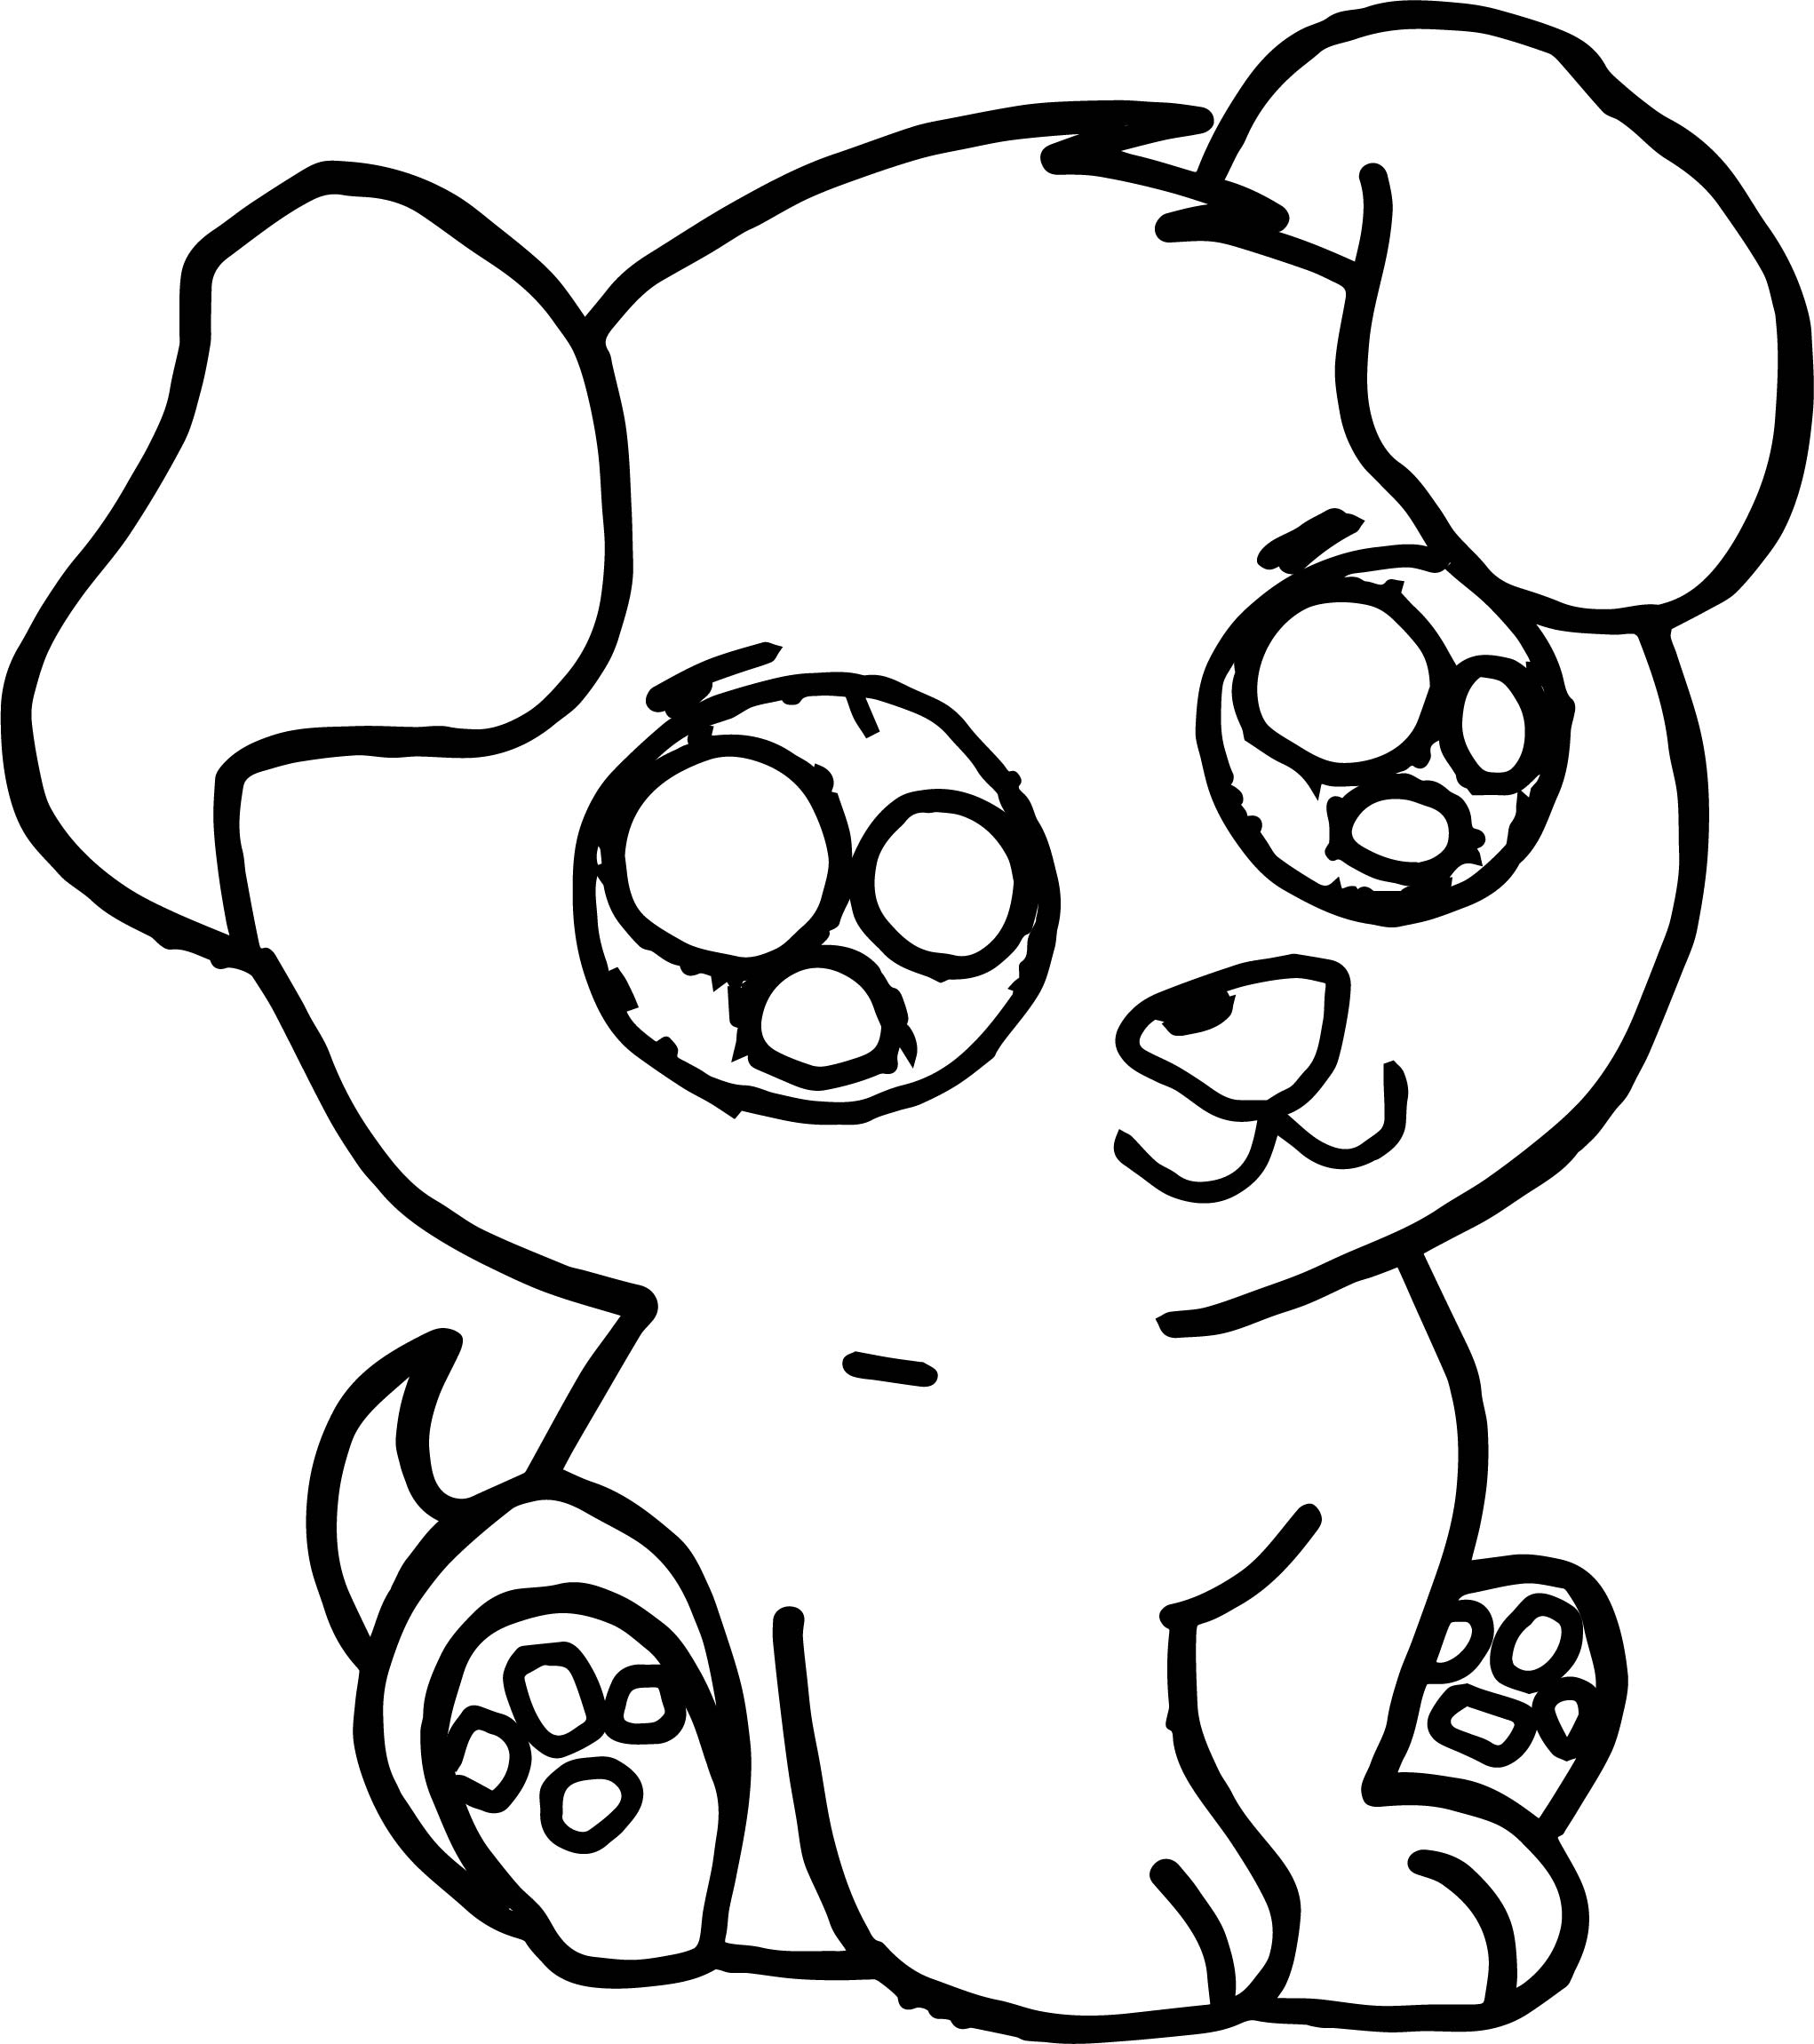 dog color sheets husky coloring pages best coloring pages for kids color sheets dog